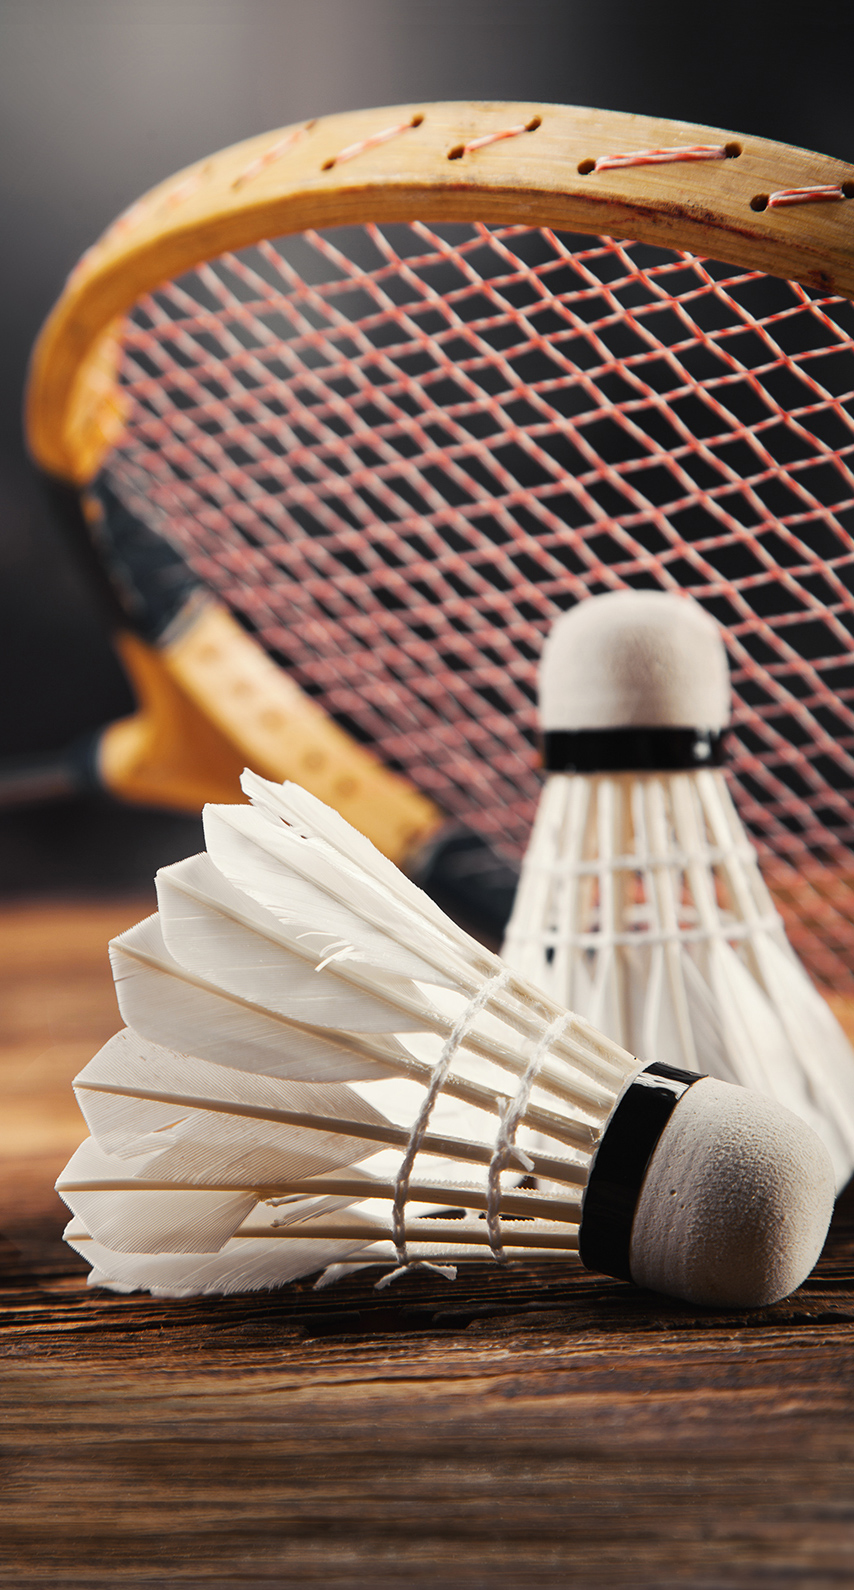 traditional, recreation, sport, leisure, gameplan (sports), participate, match, tennis, classic, racket